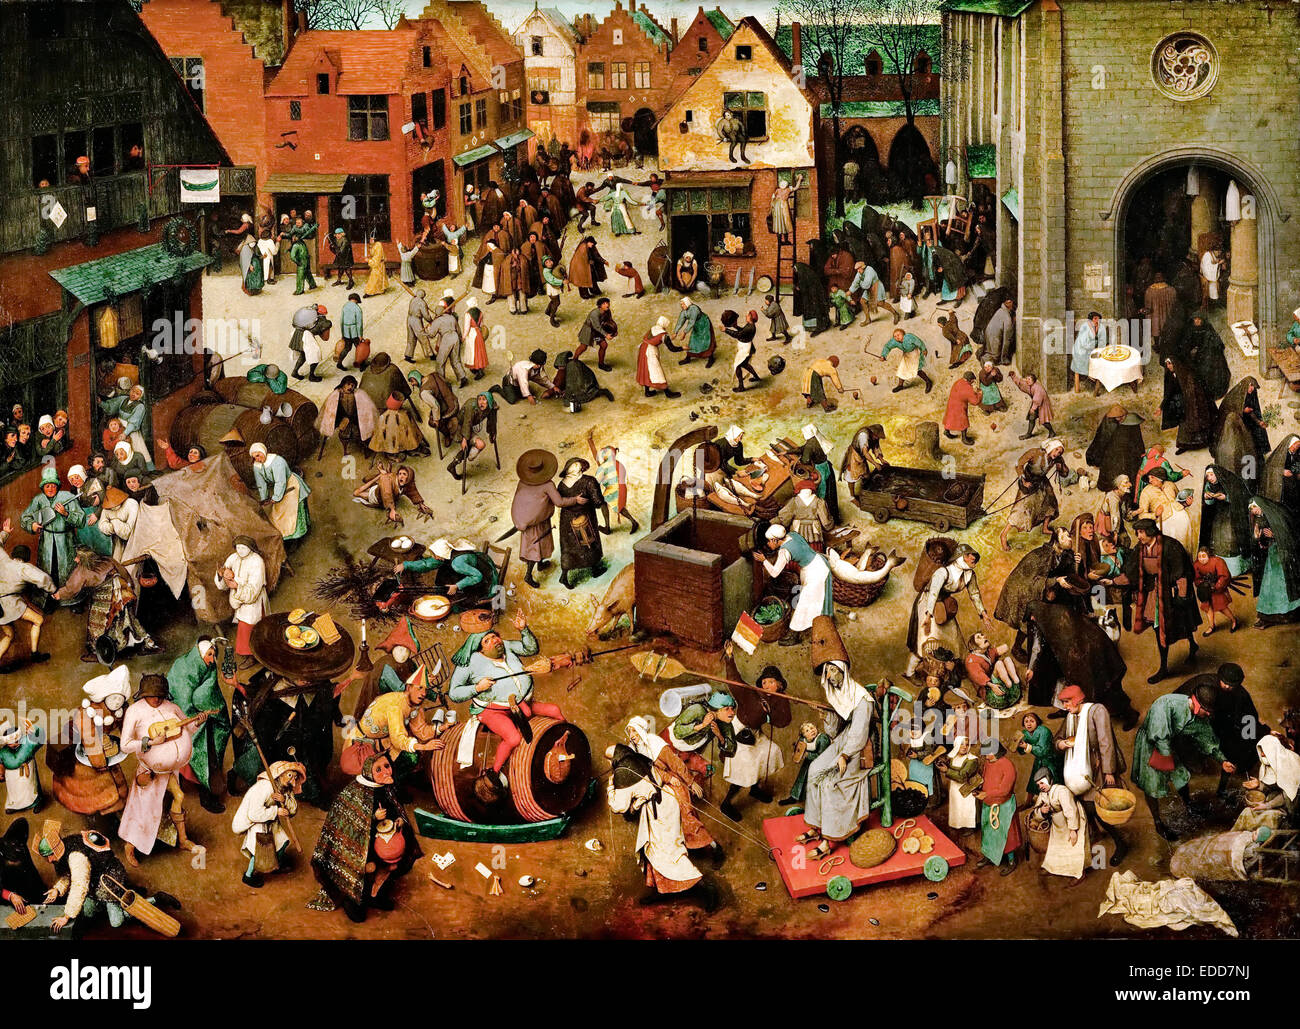 Pieter Brueghel the Elder, The Fight Between Carnival and Lent 1559 Oil on panel. Kunsthistorisches Museum, Vienna, Stock Photo